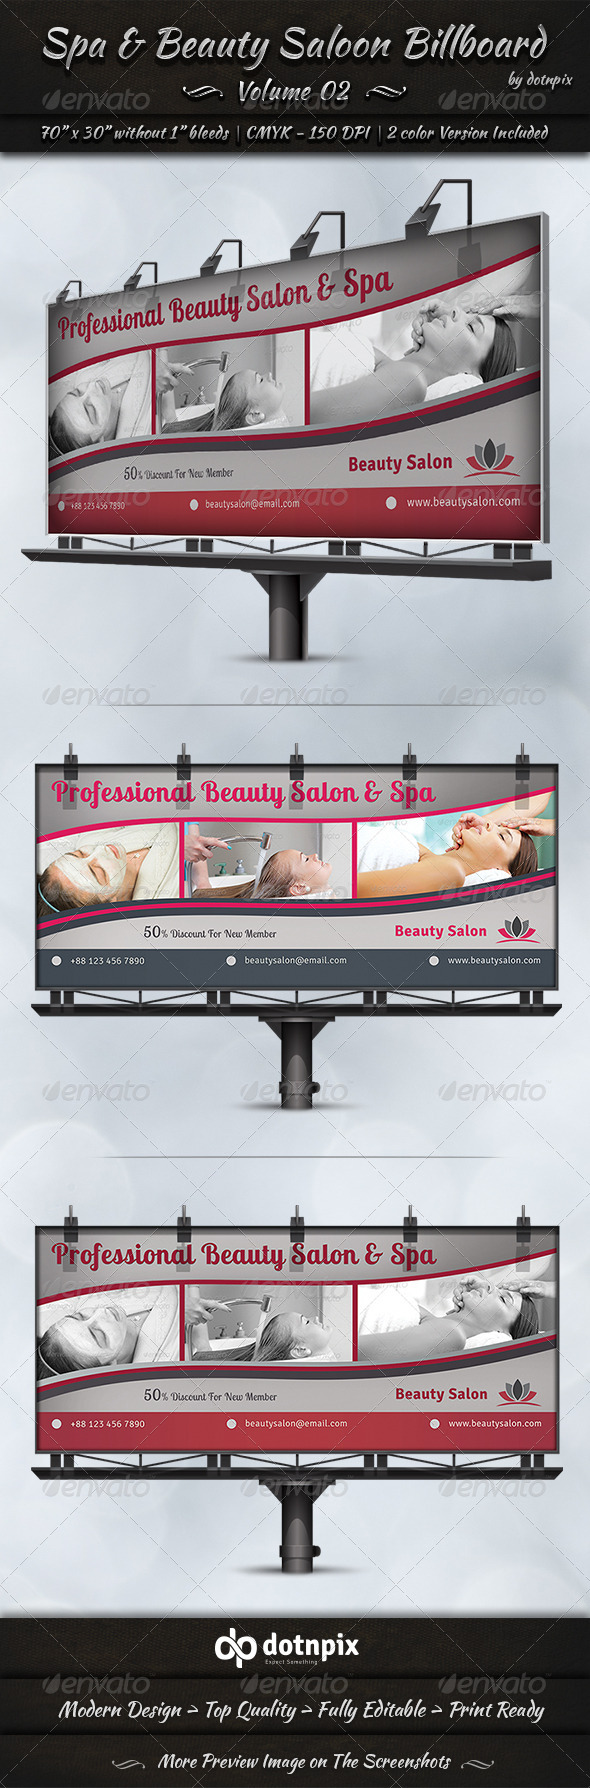 GraphicRiver Spa & Beauty Saloon Billboard Volume 2 7831392